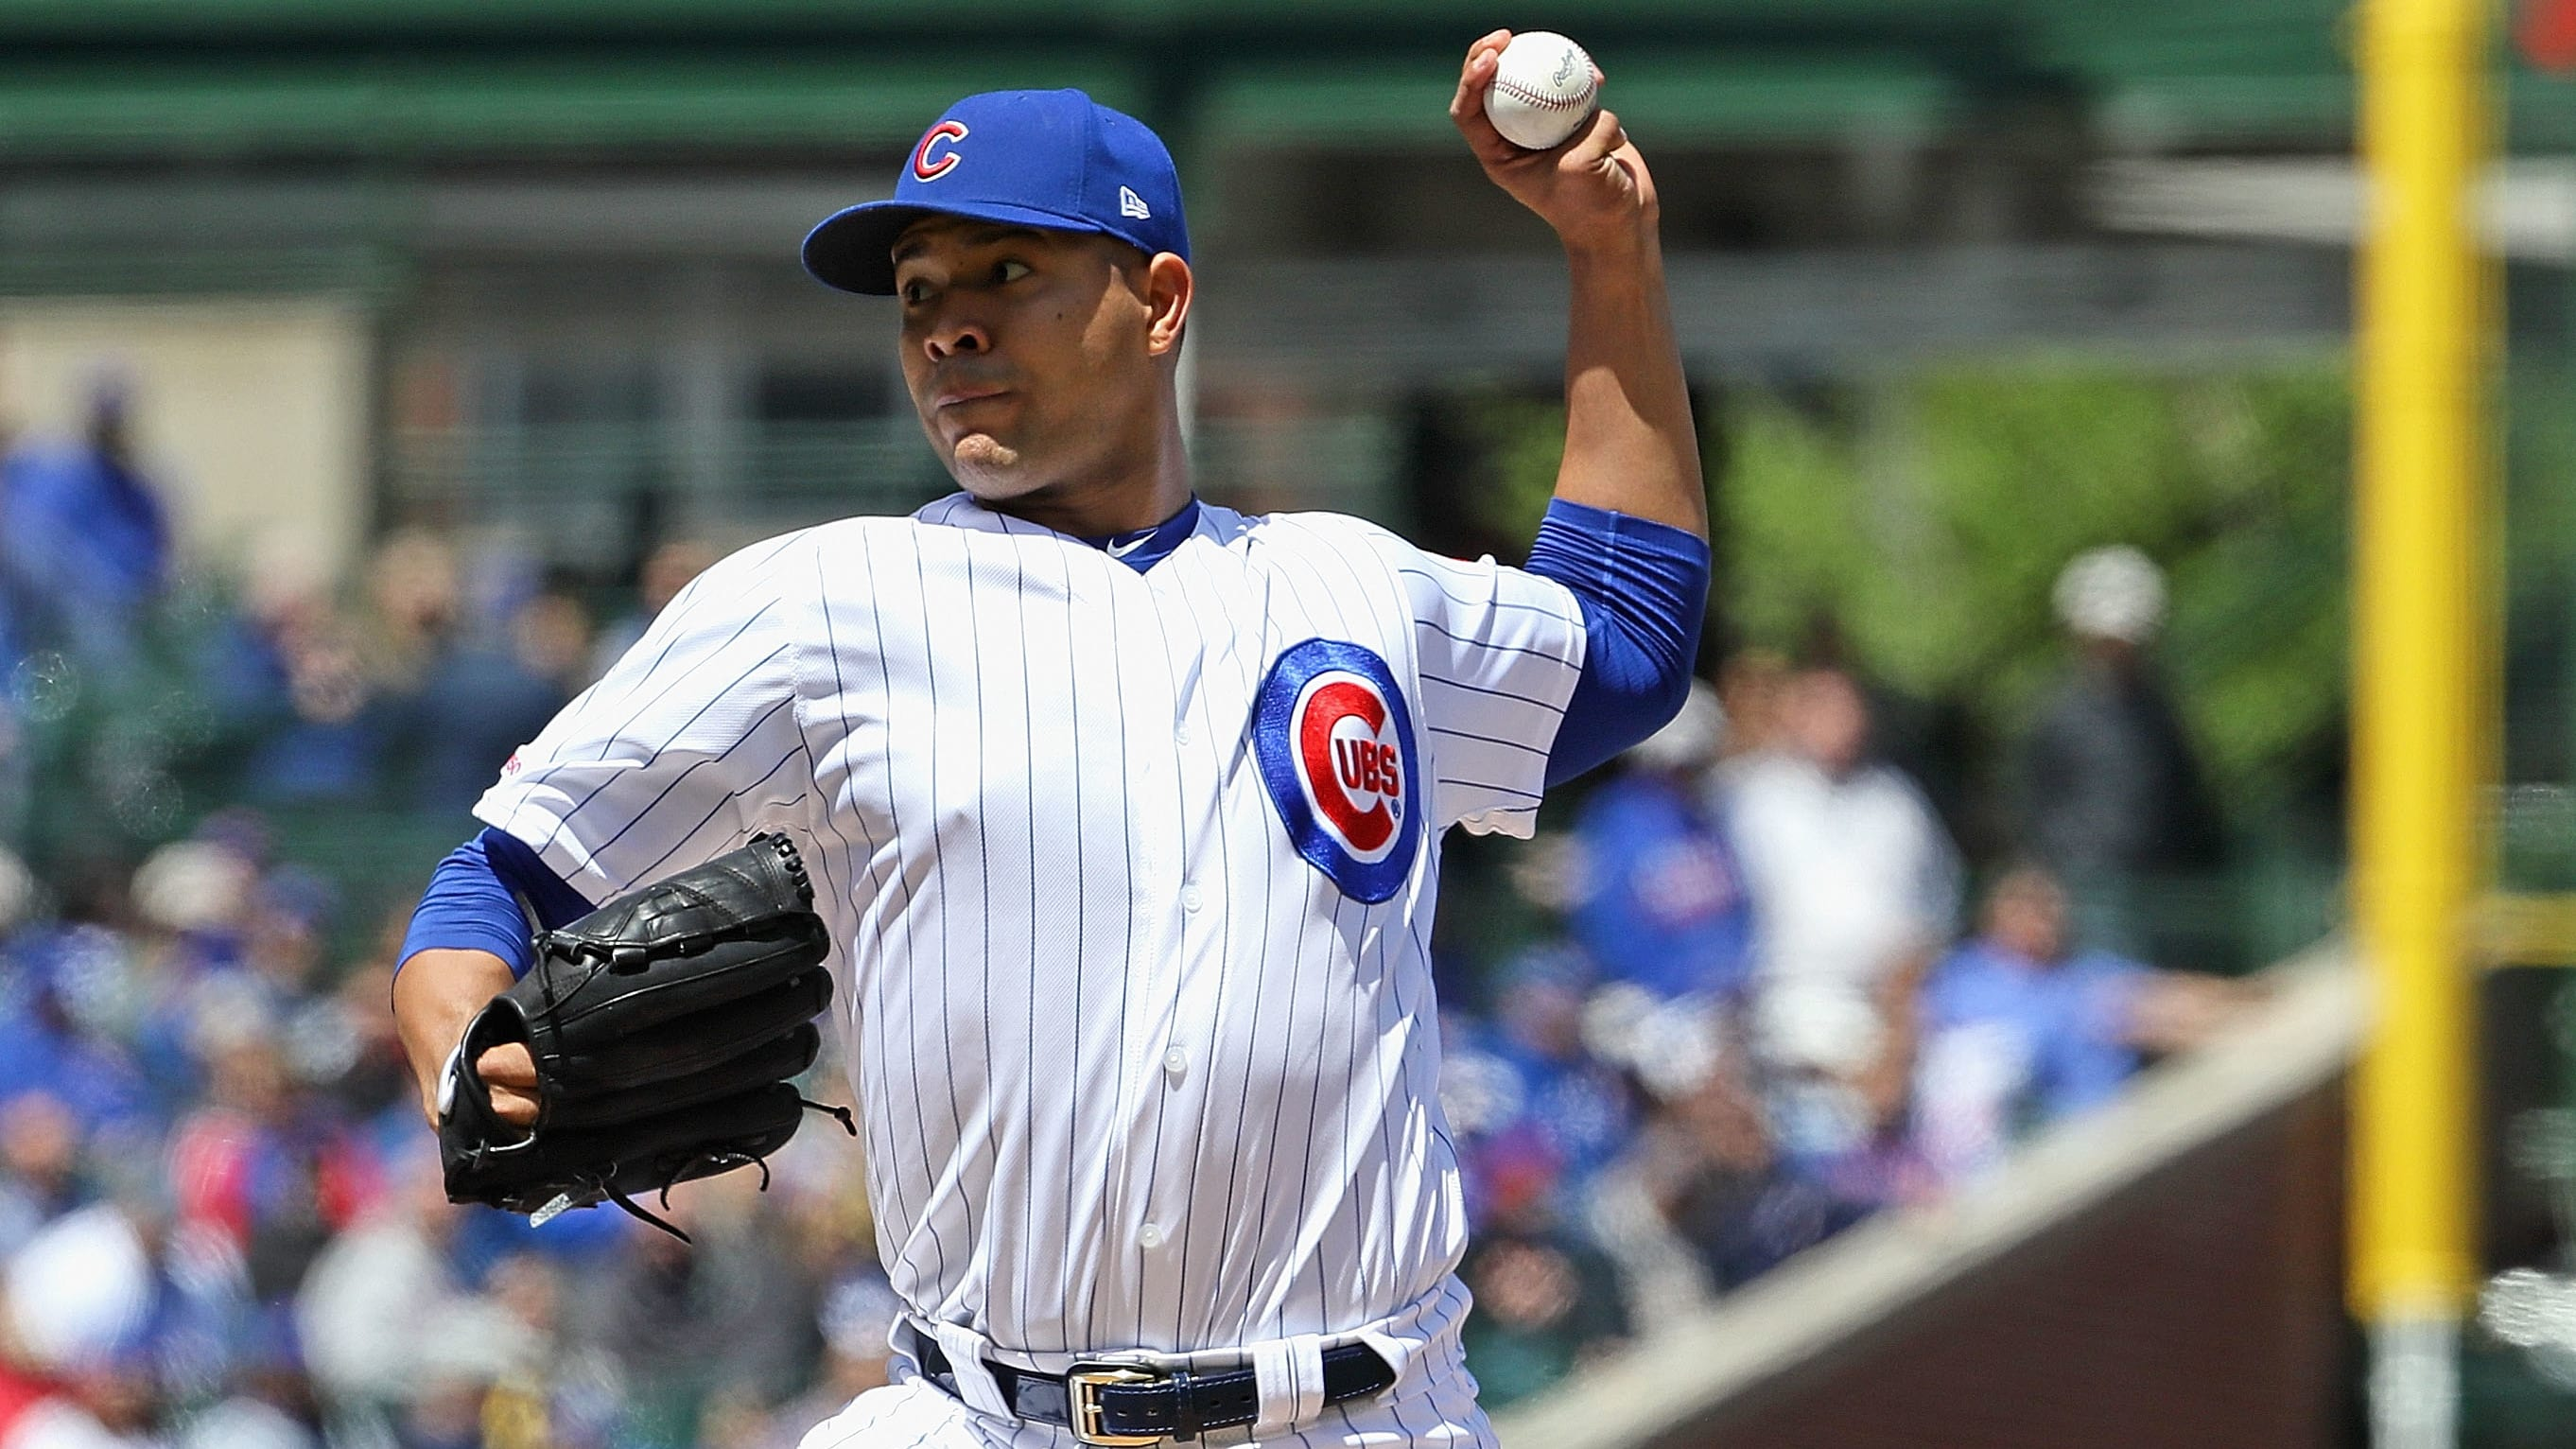 CHICAGO, ILLINOIS - MAY 10: Starting pitcher Jose Quintana #62 of the Chicago Cubs delivers the ball against the Milwaukee Brewers at Wrigley Field on May 10, 2019 in Chicago, Illinois. The Brewers defeated the Cubs 7-0. (Photo by Jonathan Daniel/Getty Images)